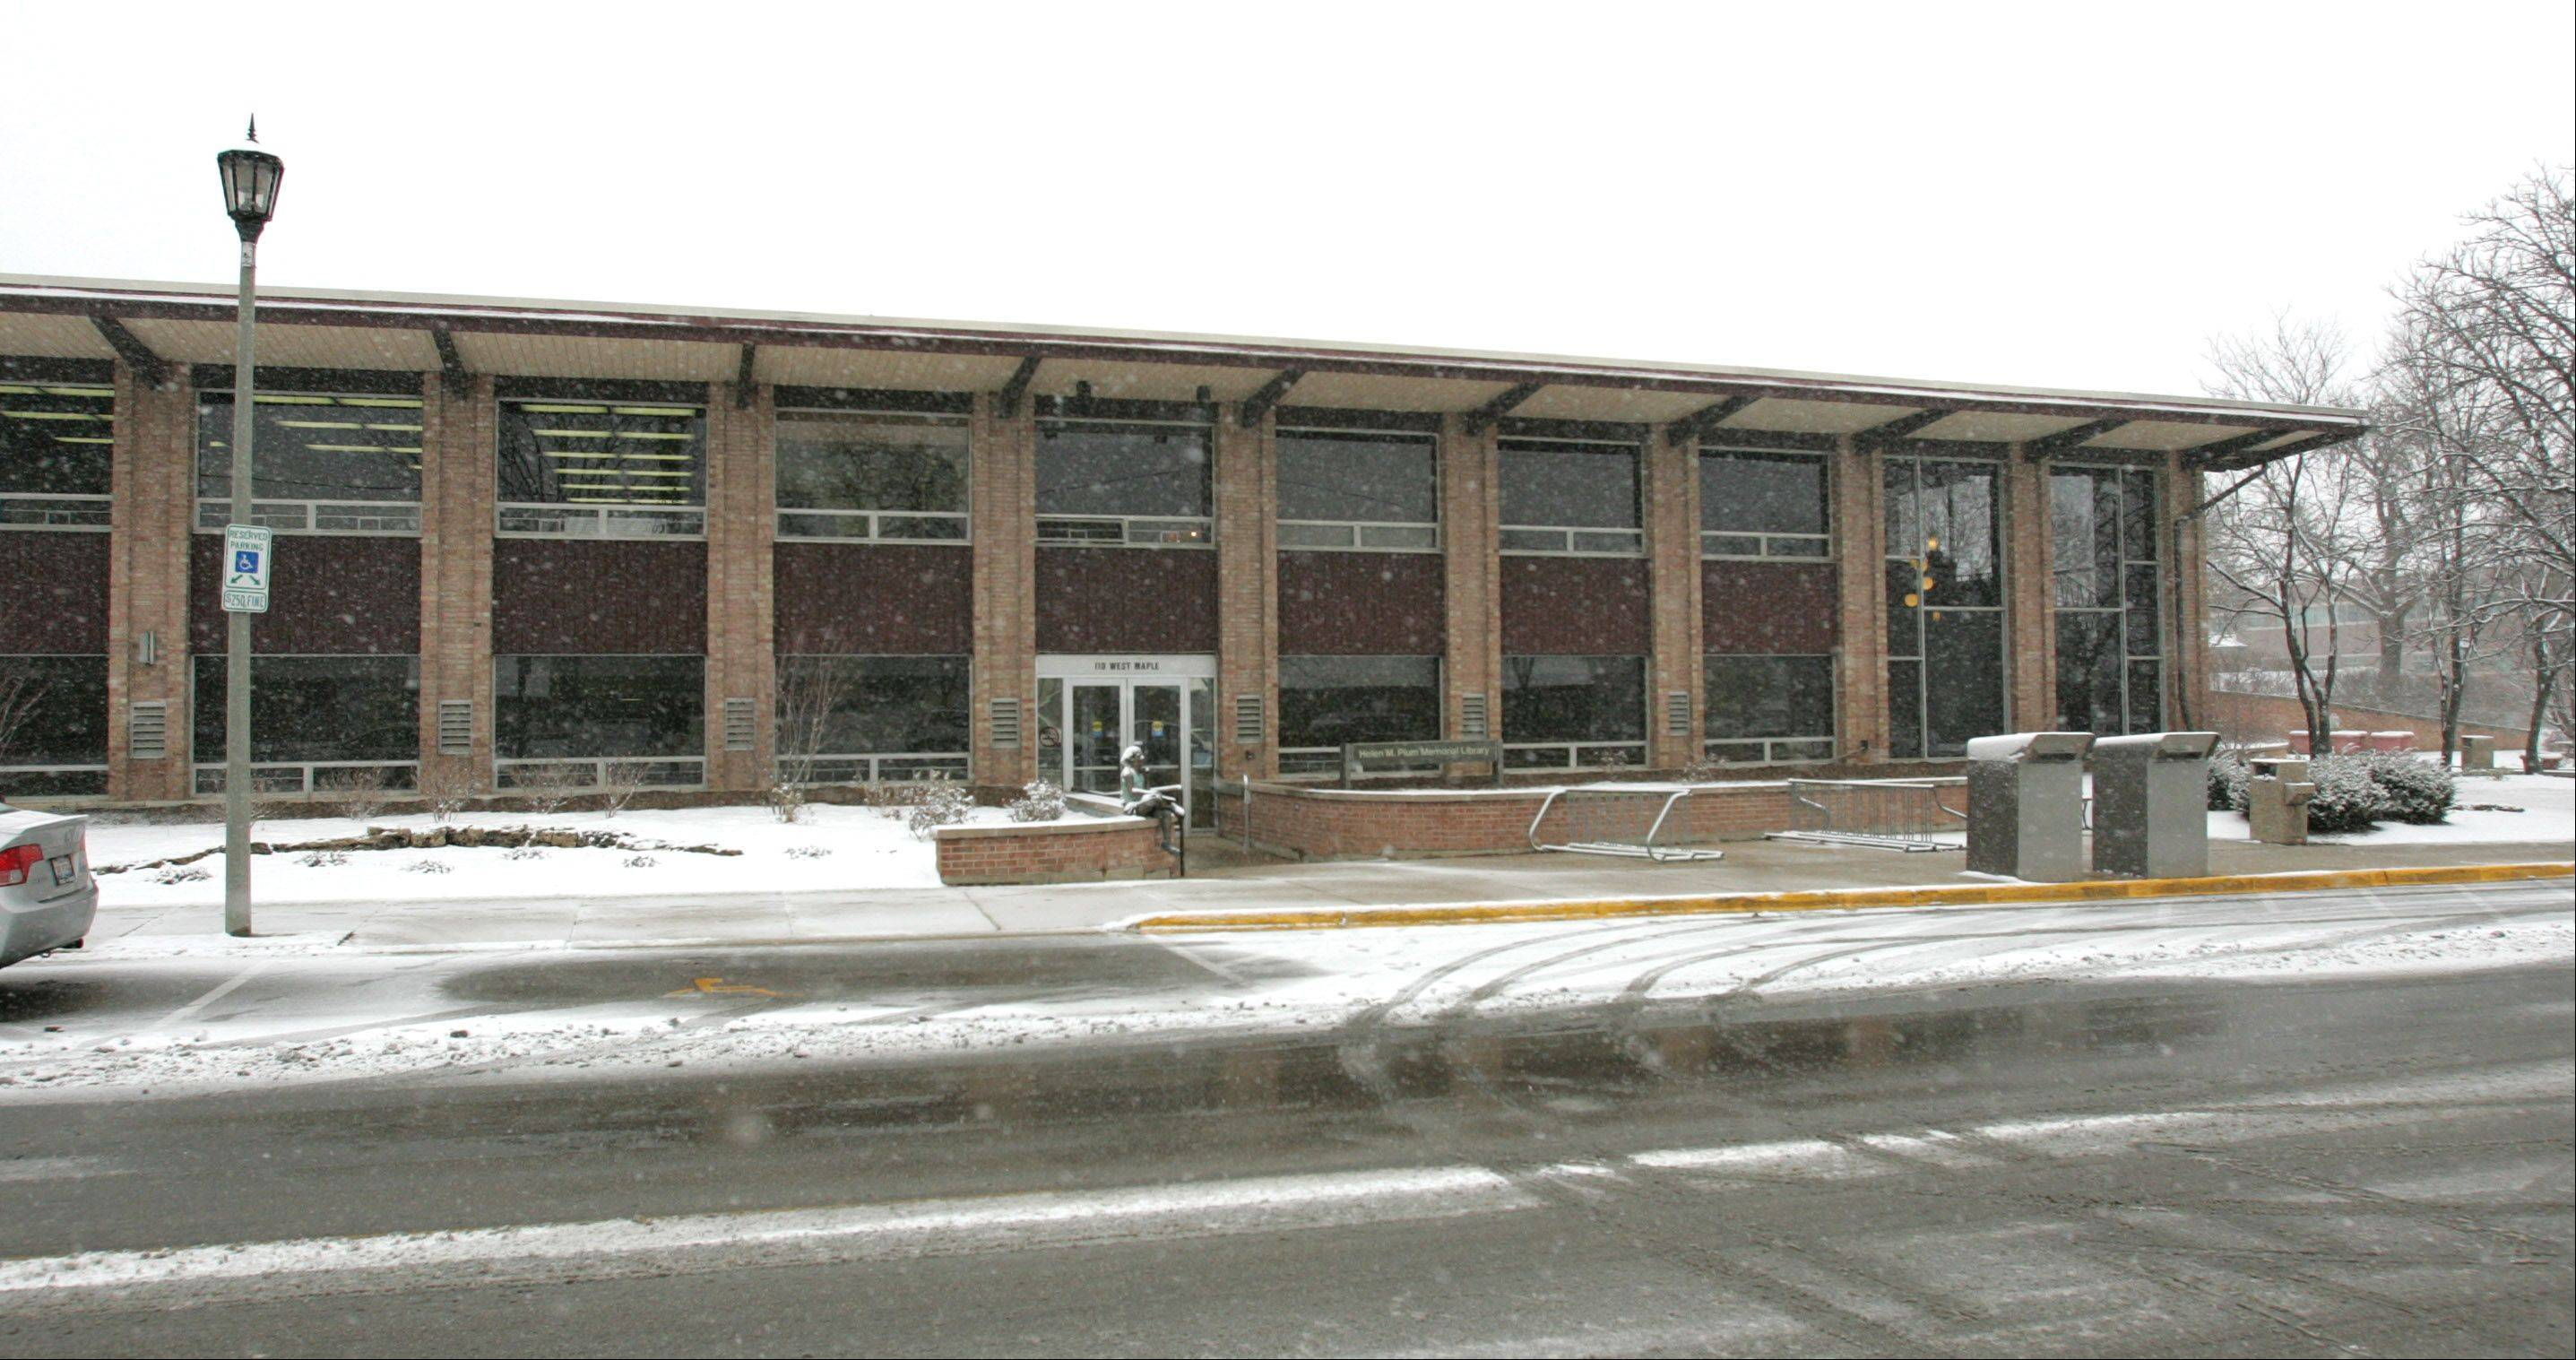 The Helen Plum Memorial Library in Lombard allowed homeless people awaiting shelter at a PADS site to stay at the library from its closing at 1 p.m. Tuesday until the shelter at First Church of Lombard opened early at 5 p.m. The collaboration provided shelter for about a dozen people throughout the snowy afternoon.